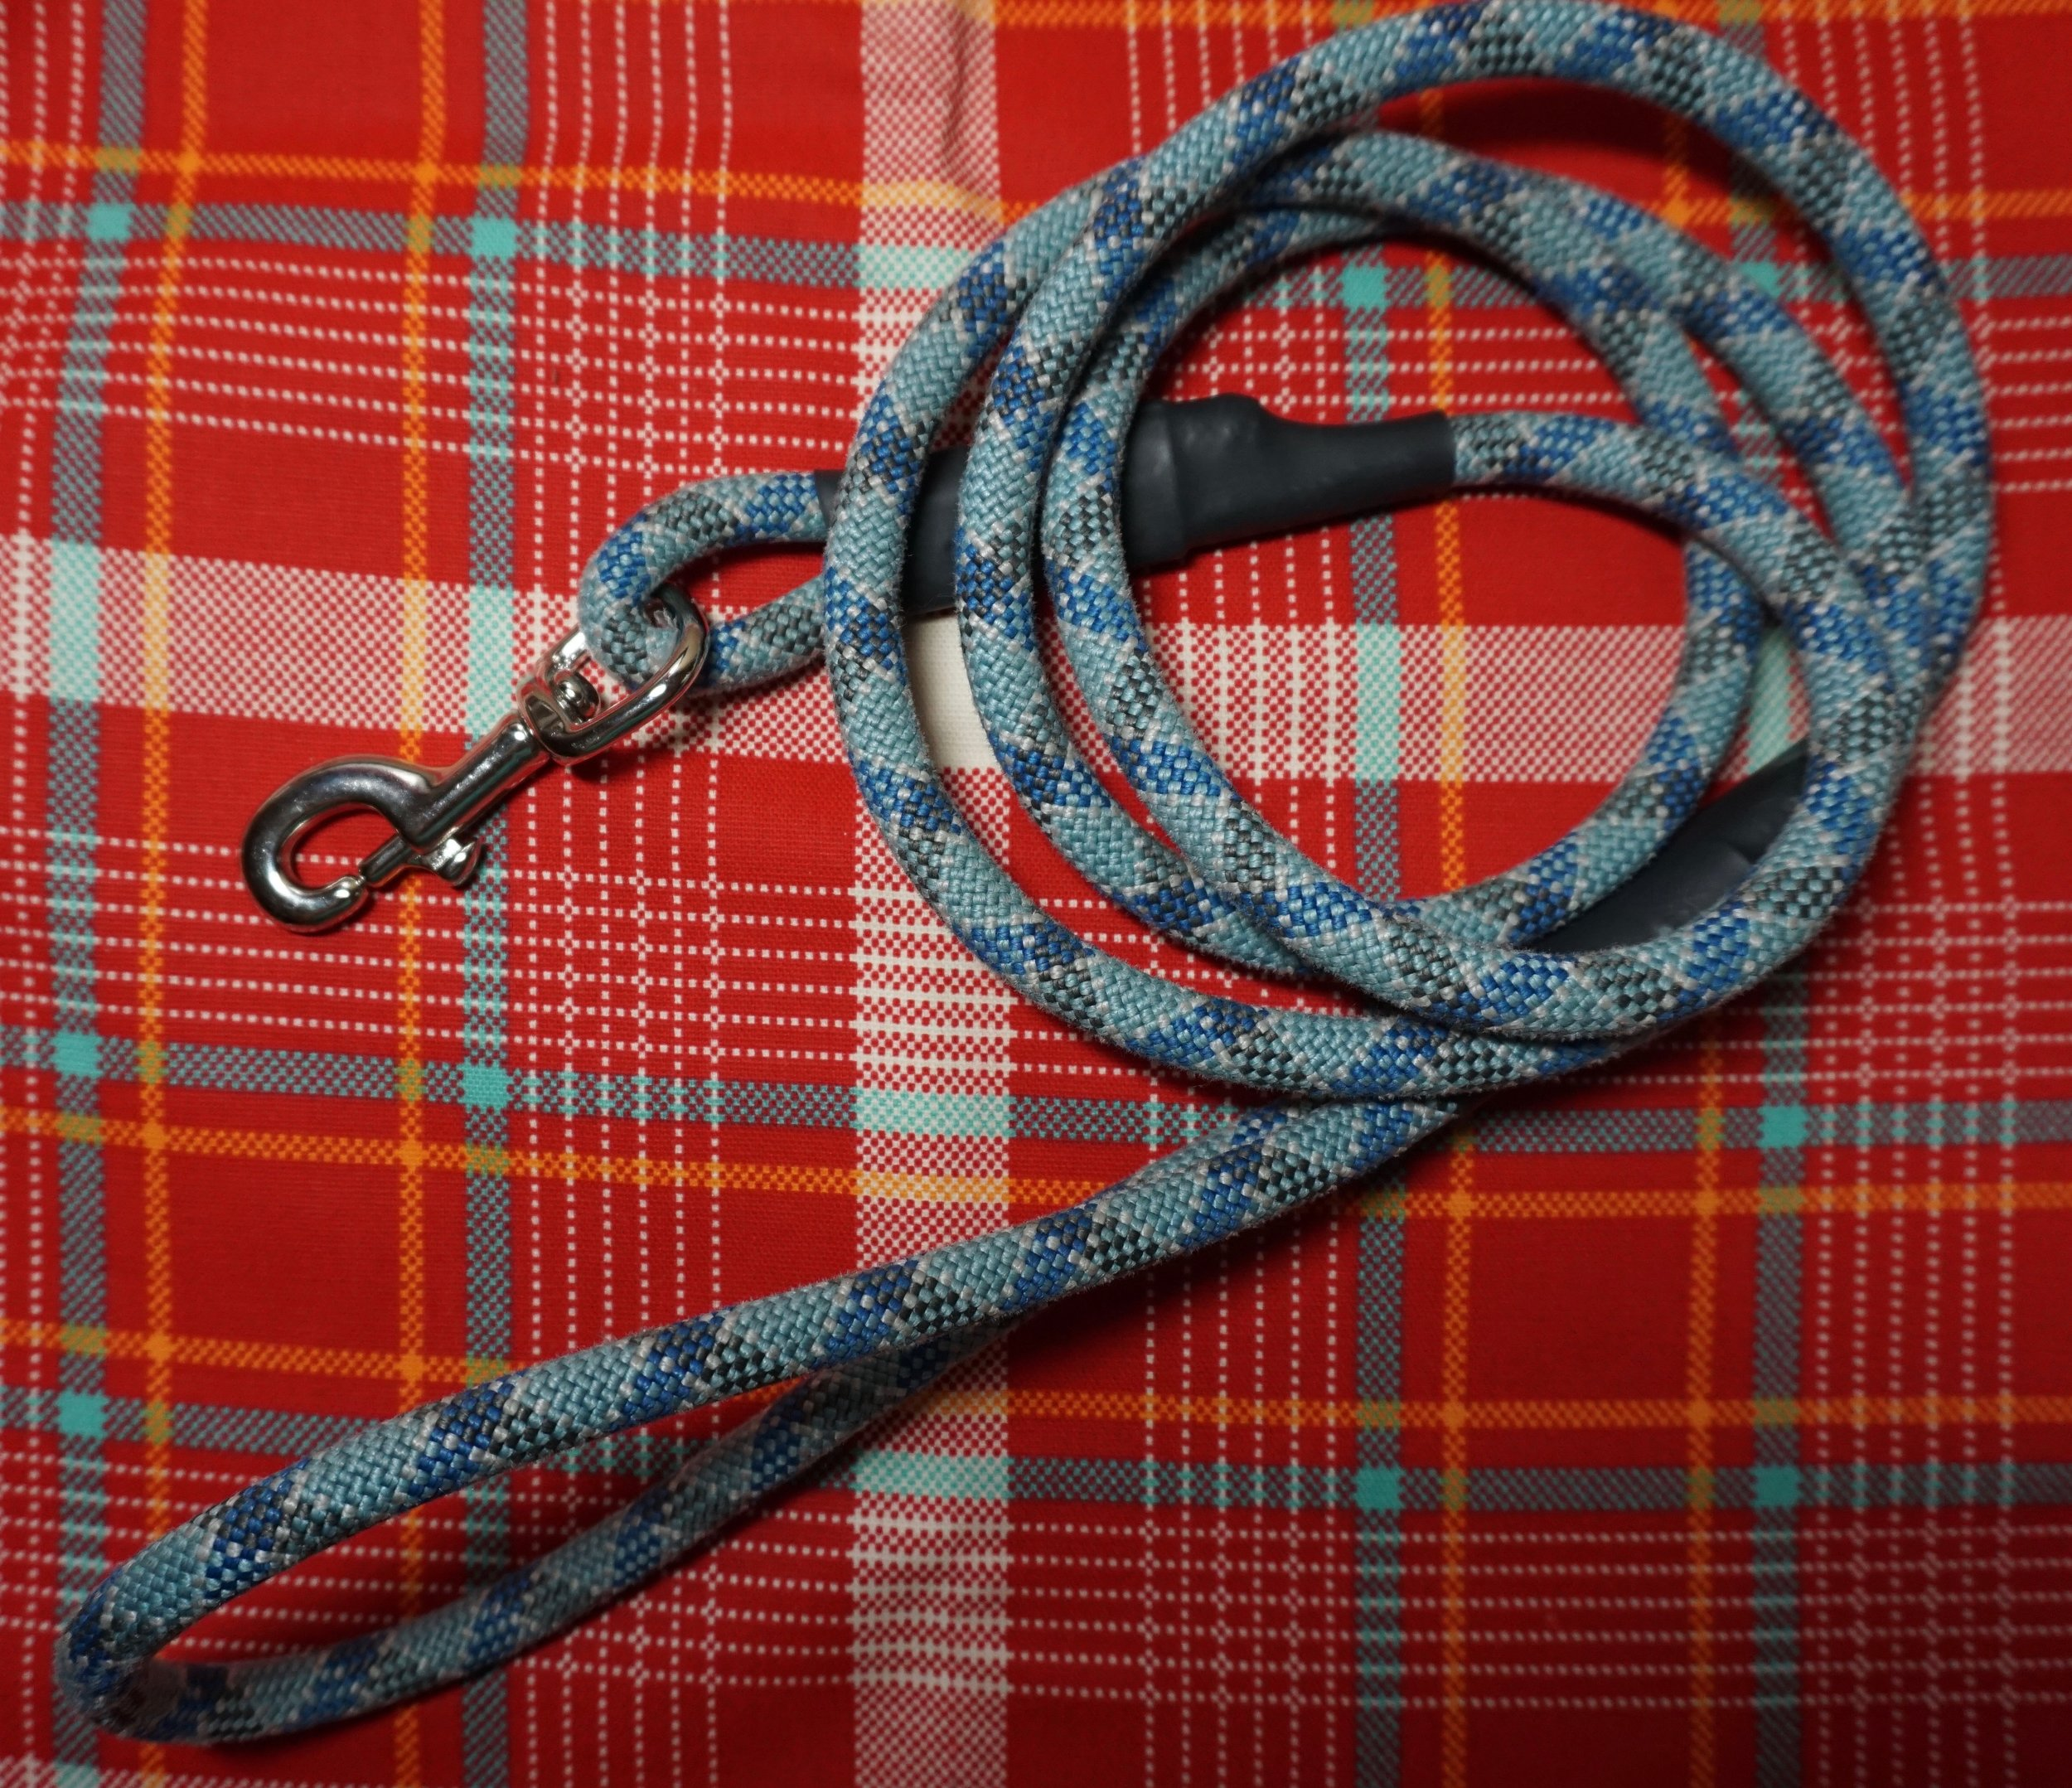 Recycled climbing rope leash.